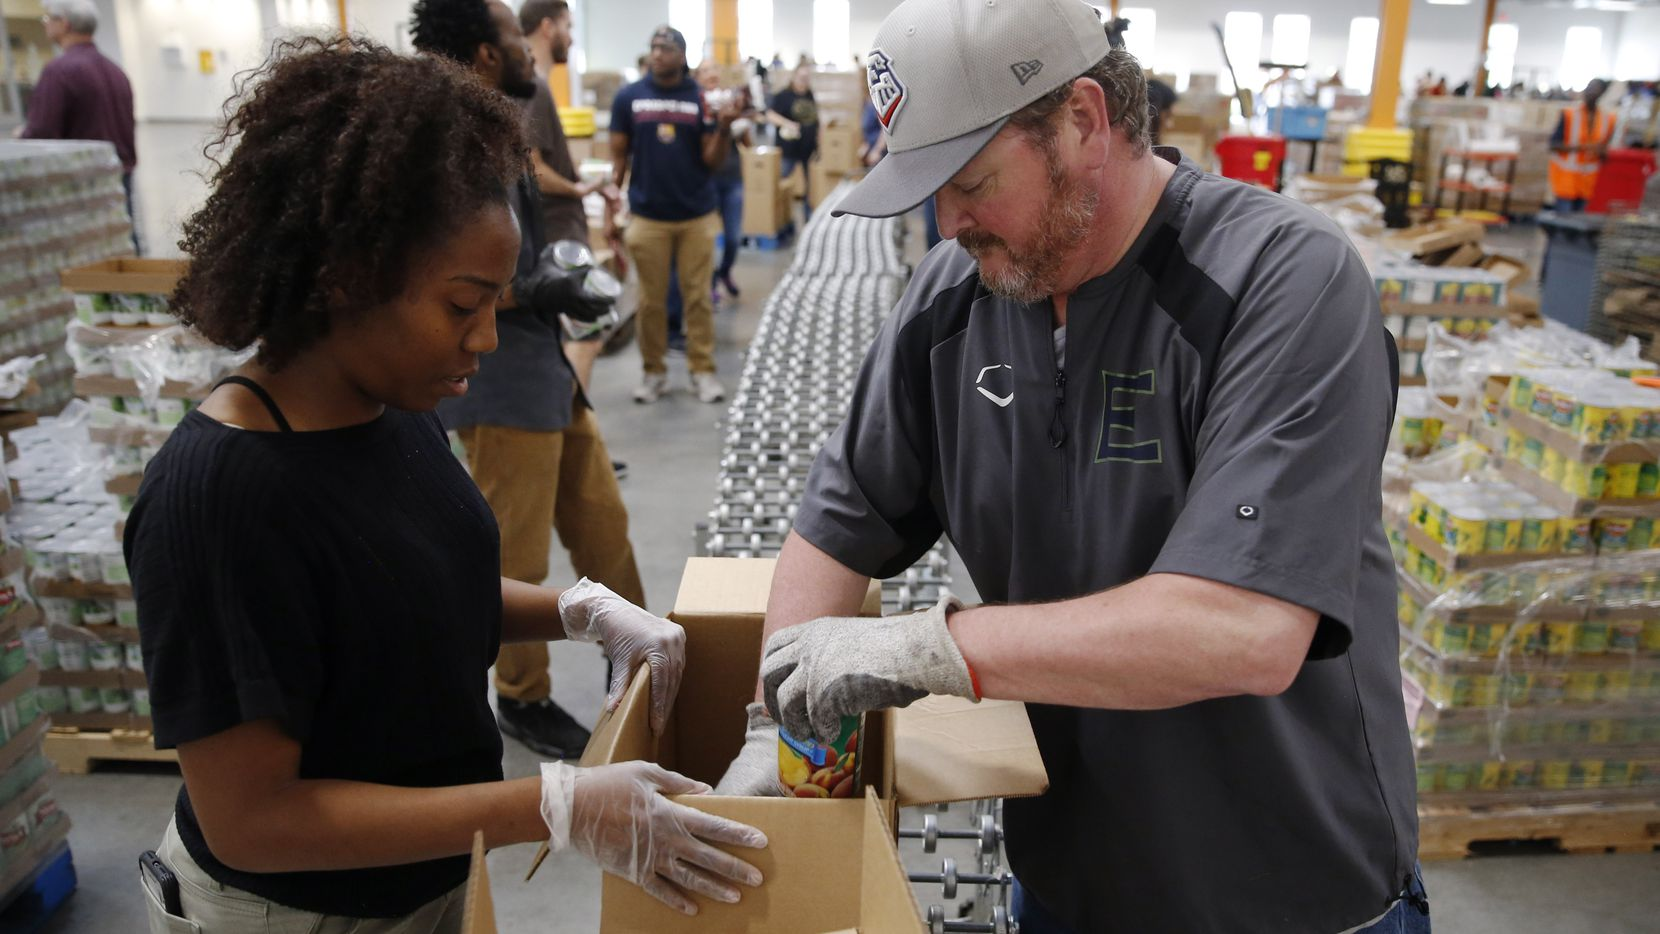 Tatyana Lowery (left) of Dallas  and Mark Martin (right) of Rowlett work on putting together boxes for distribution.